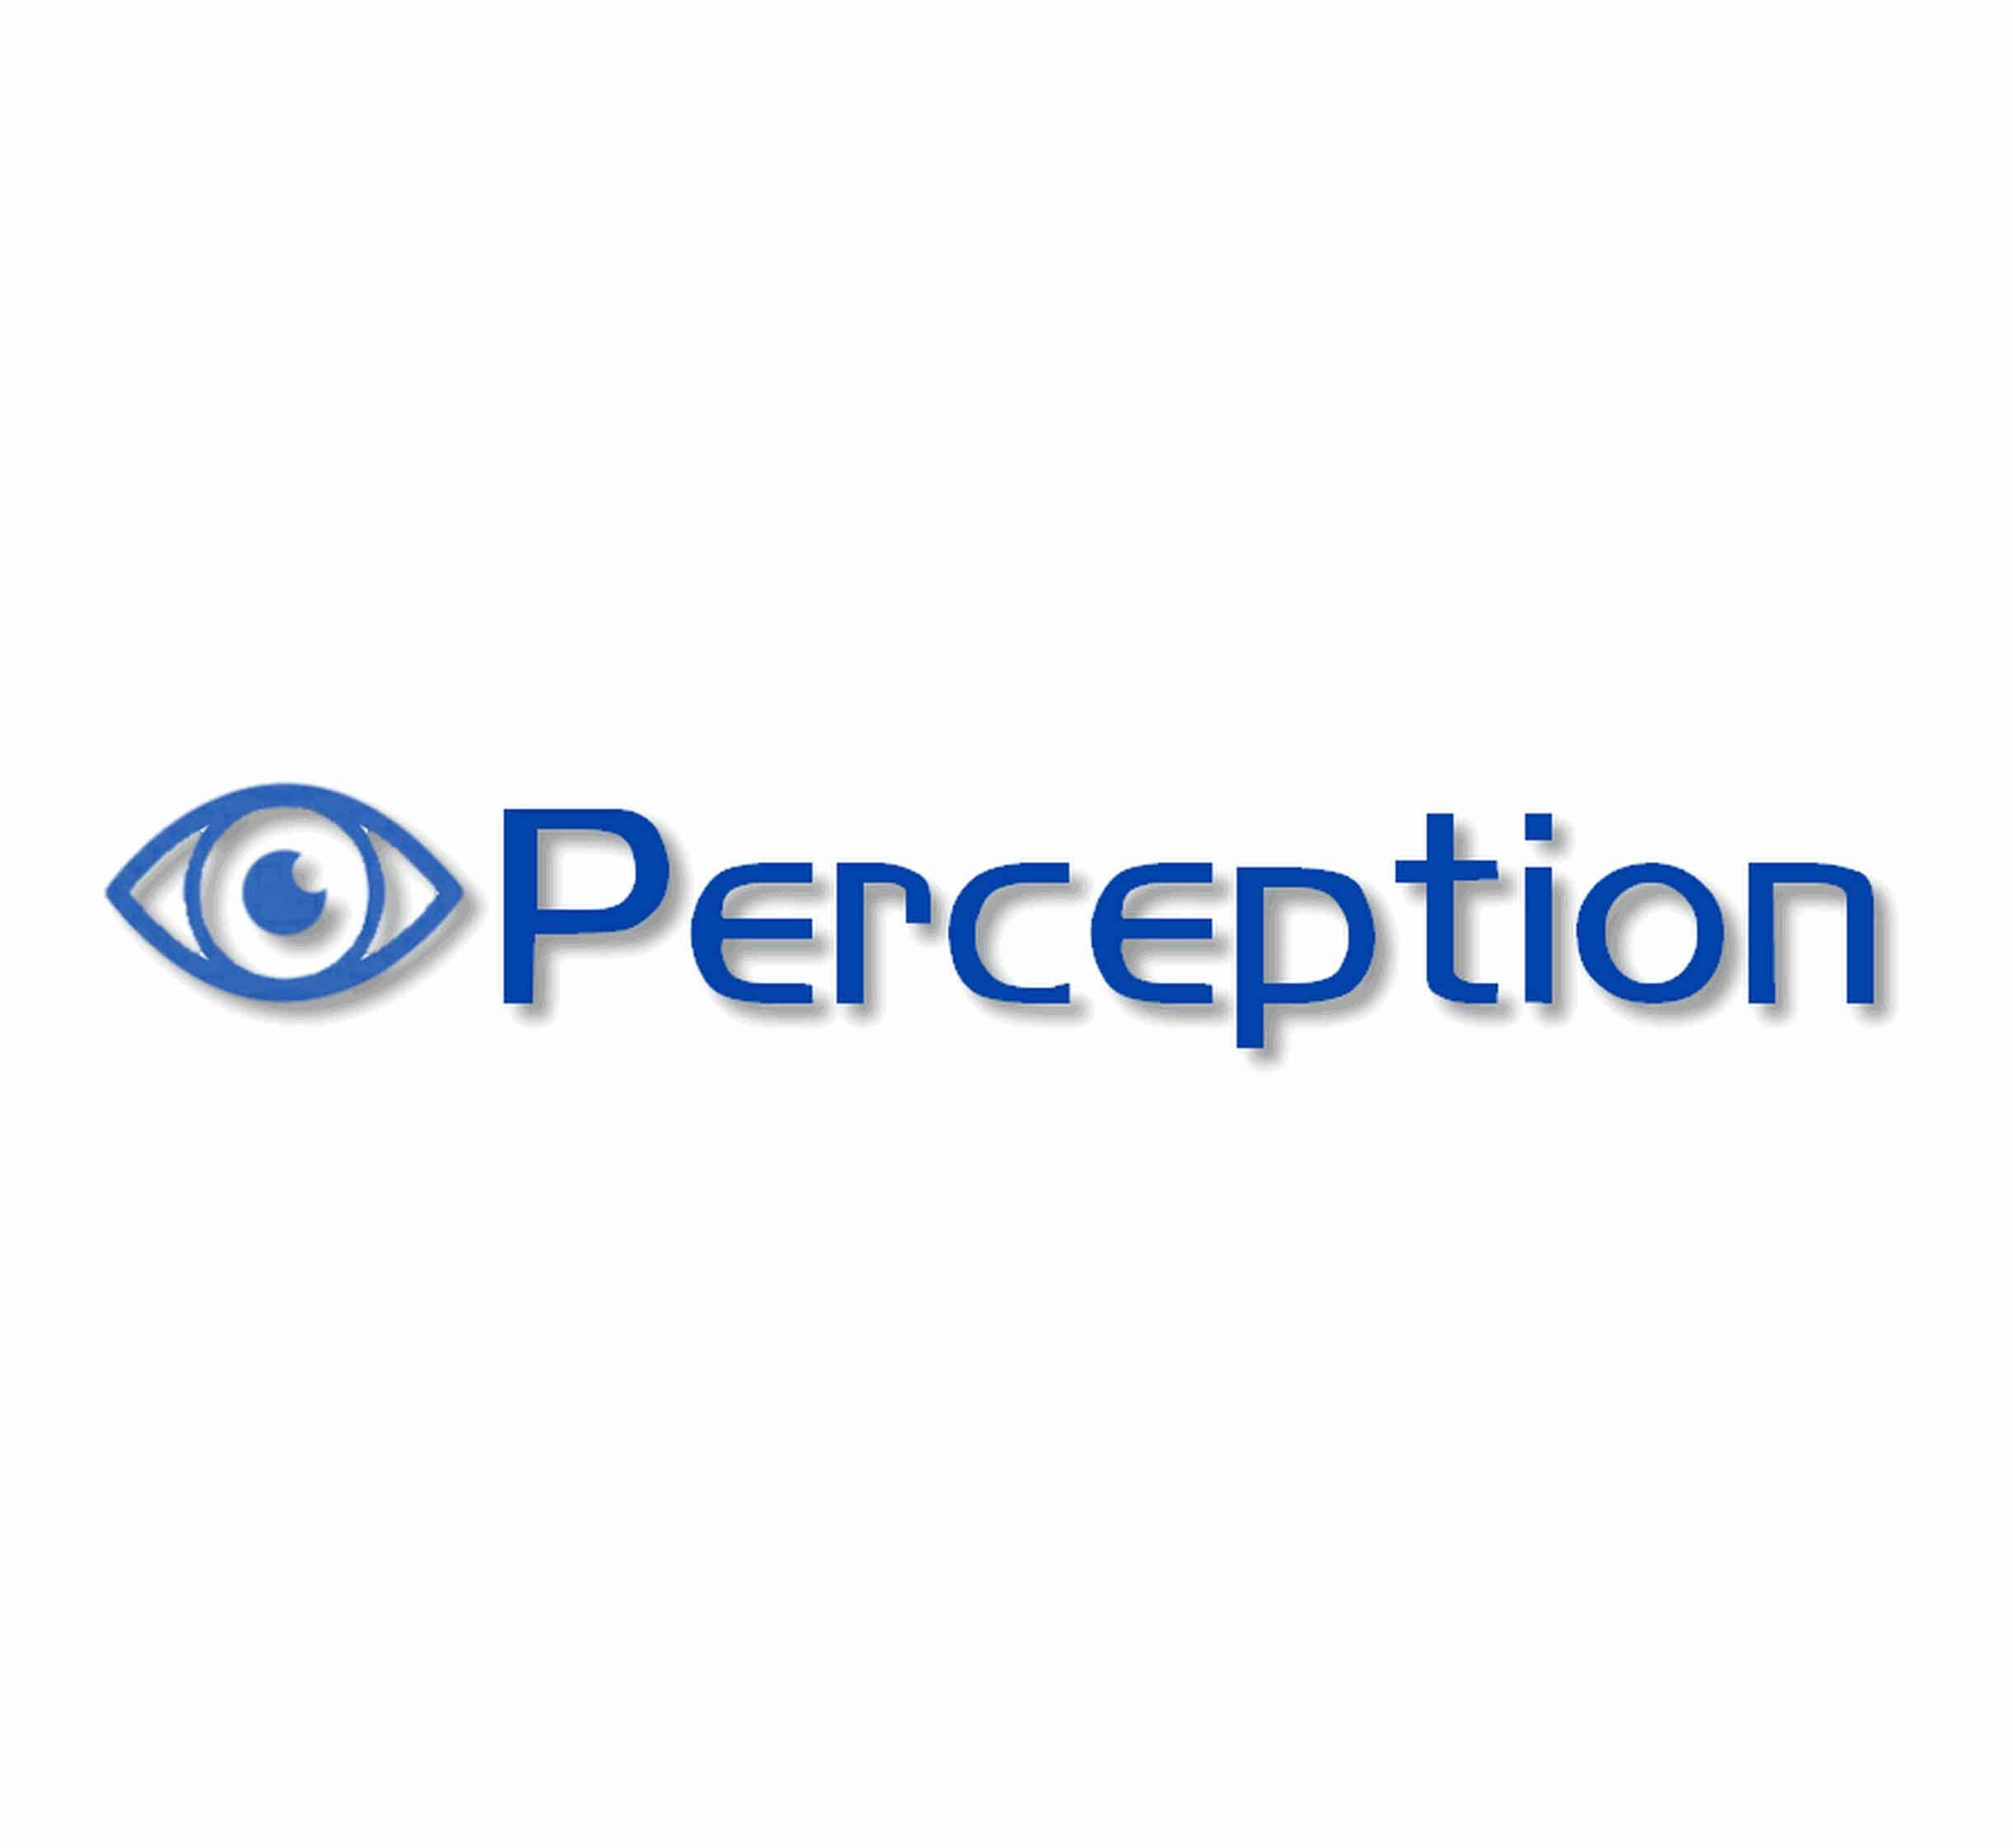 Perception RSS, logo by New Paradigm graphic design, Santa Rosa, CA